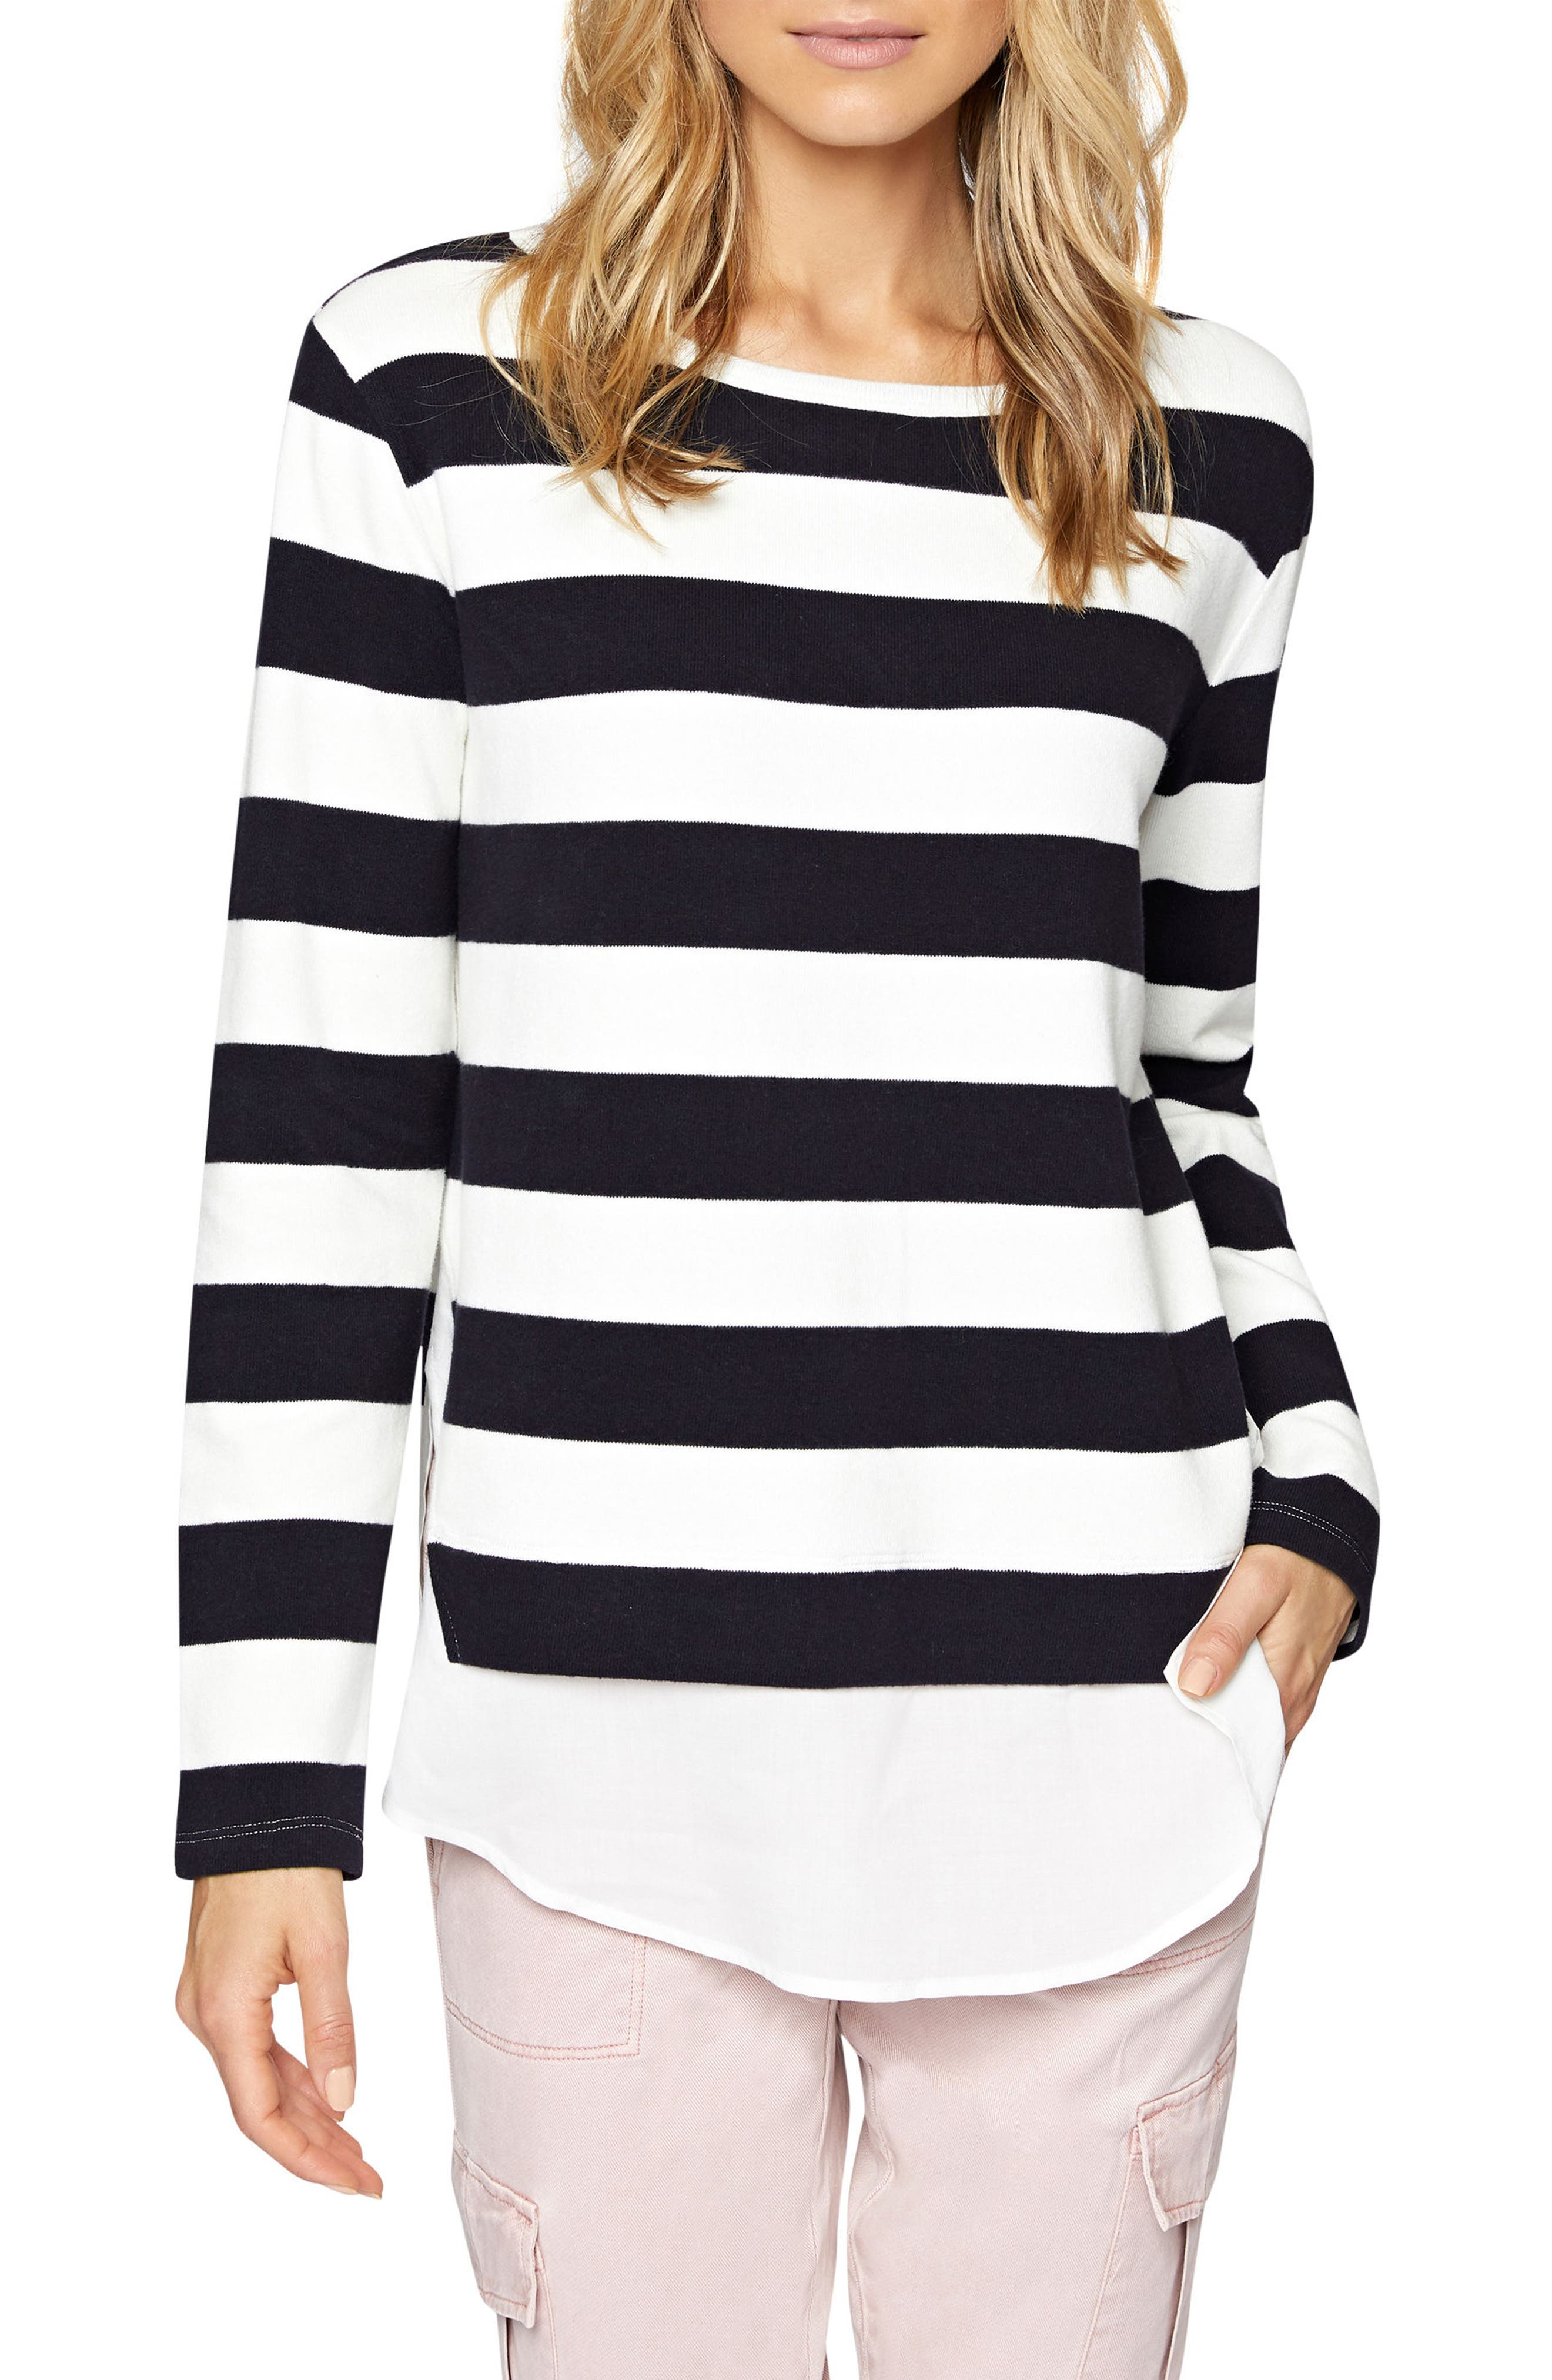 Alternate Image 1 Selected - Sanctuary Layered Look Stripe Sweater